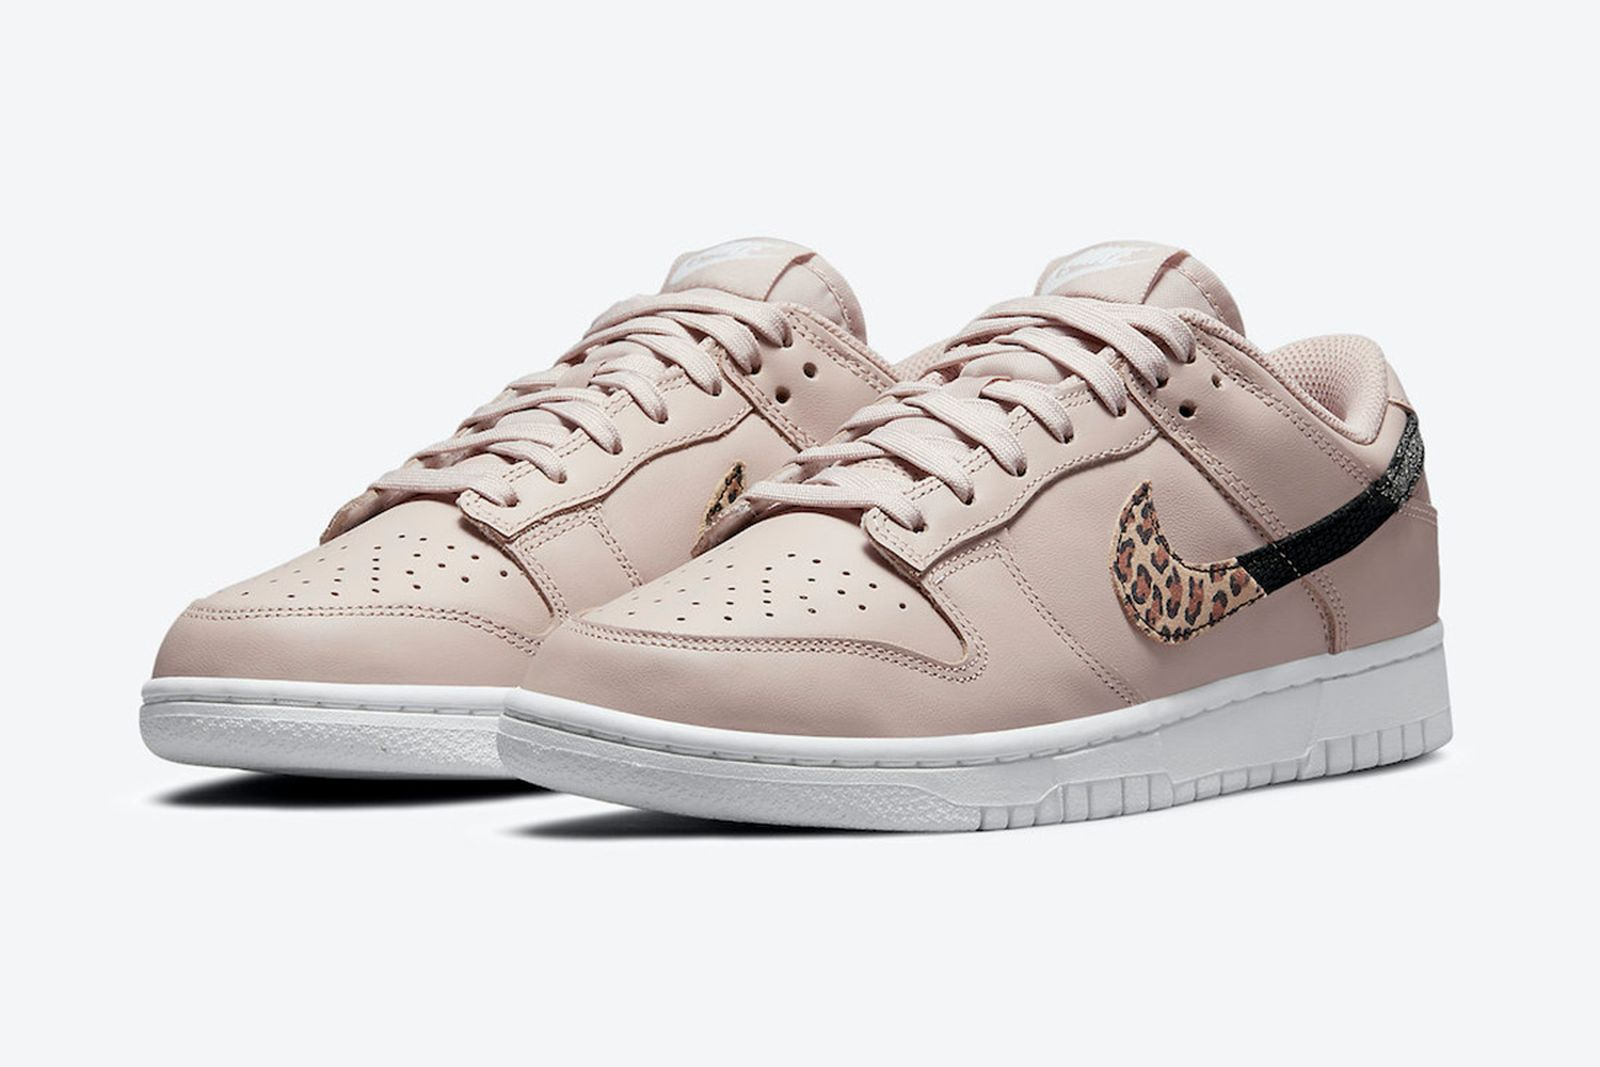 nike-dunk-low-upcoming-2021-releases-08